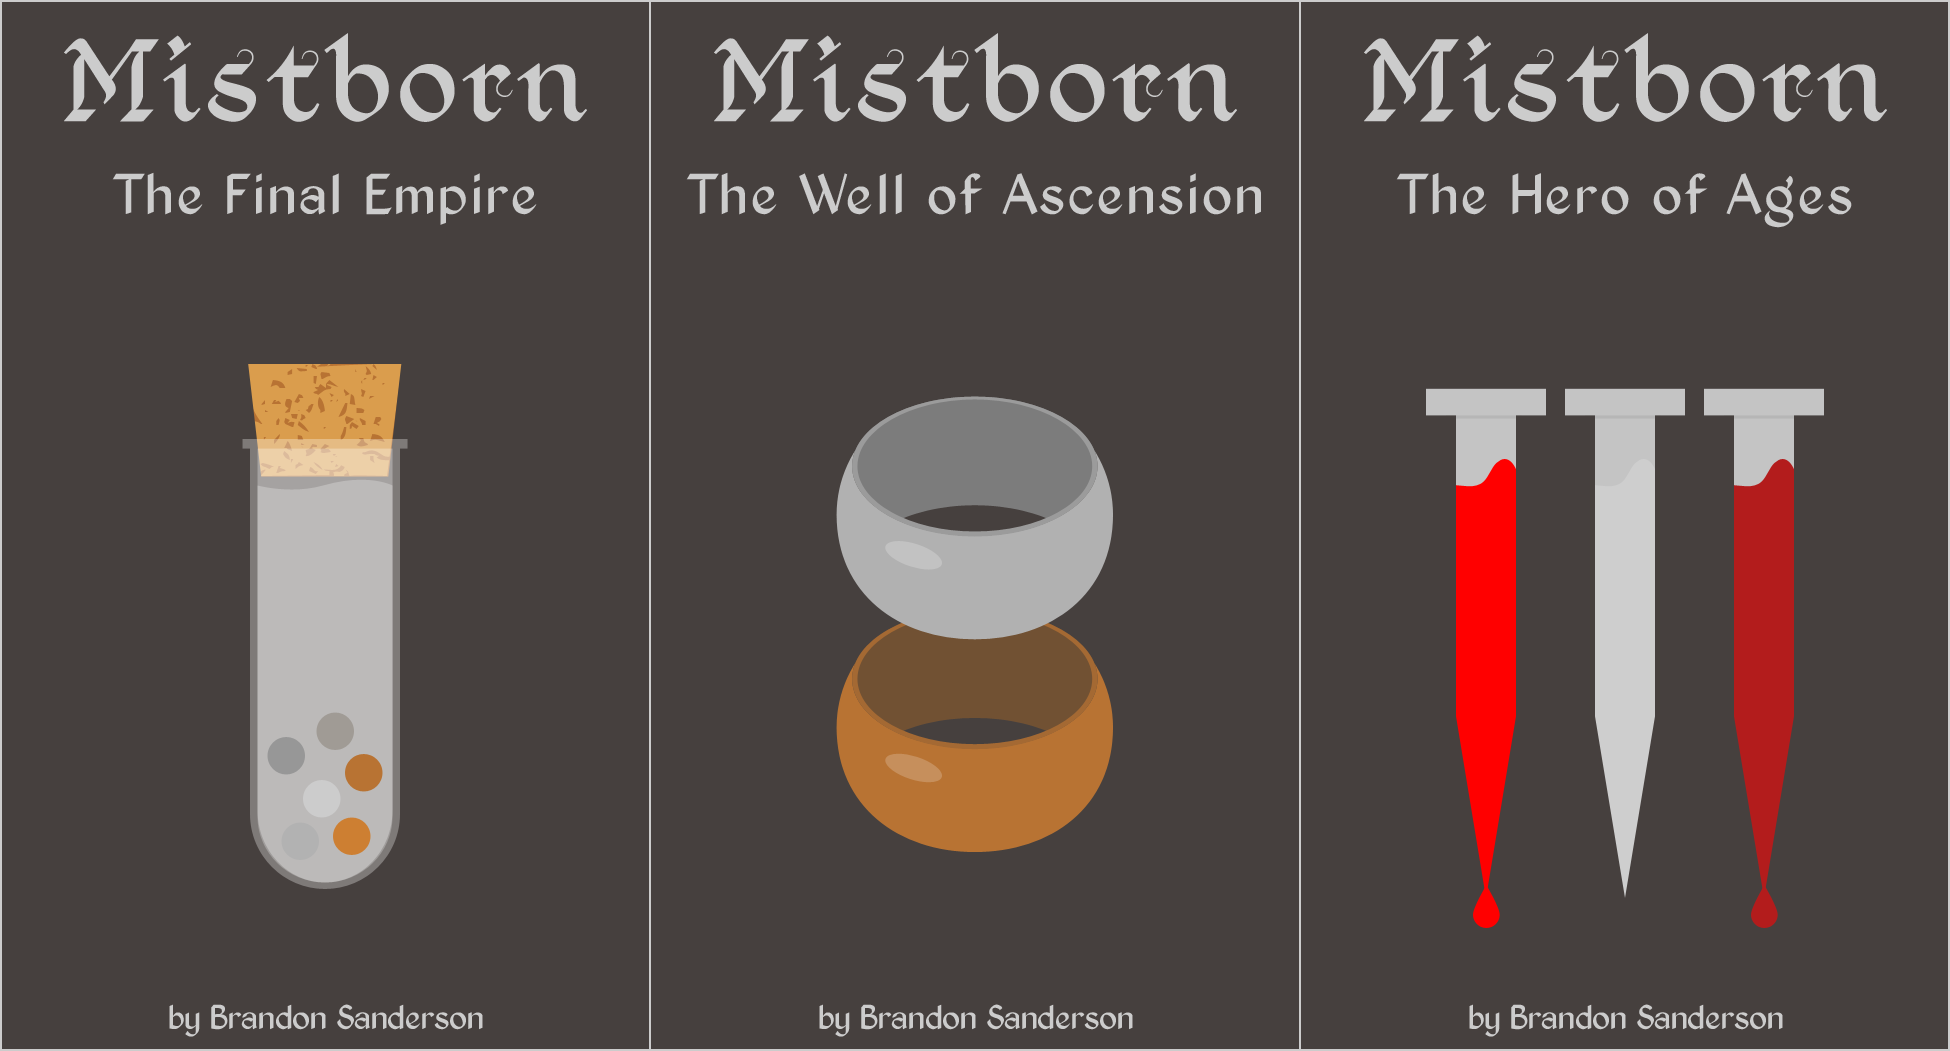 Mistborn and the three ways to use metals.